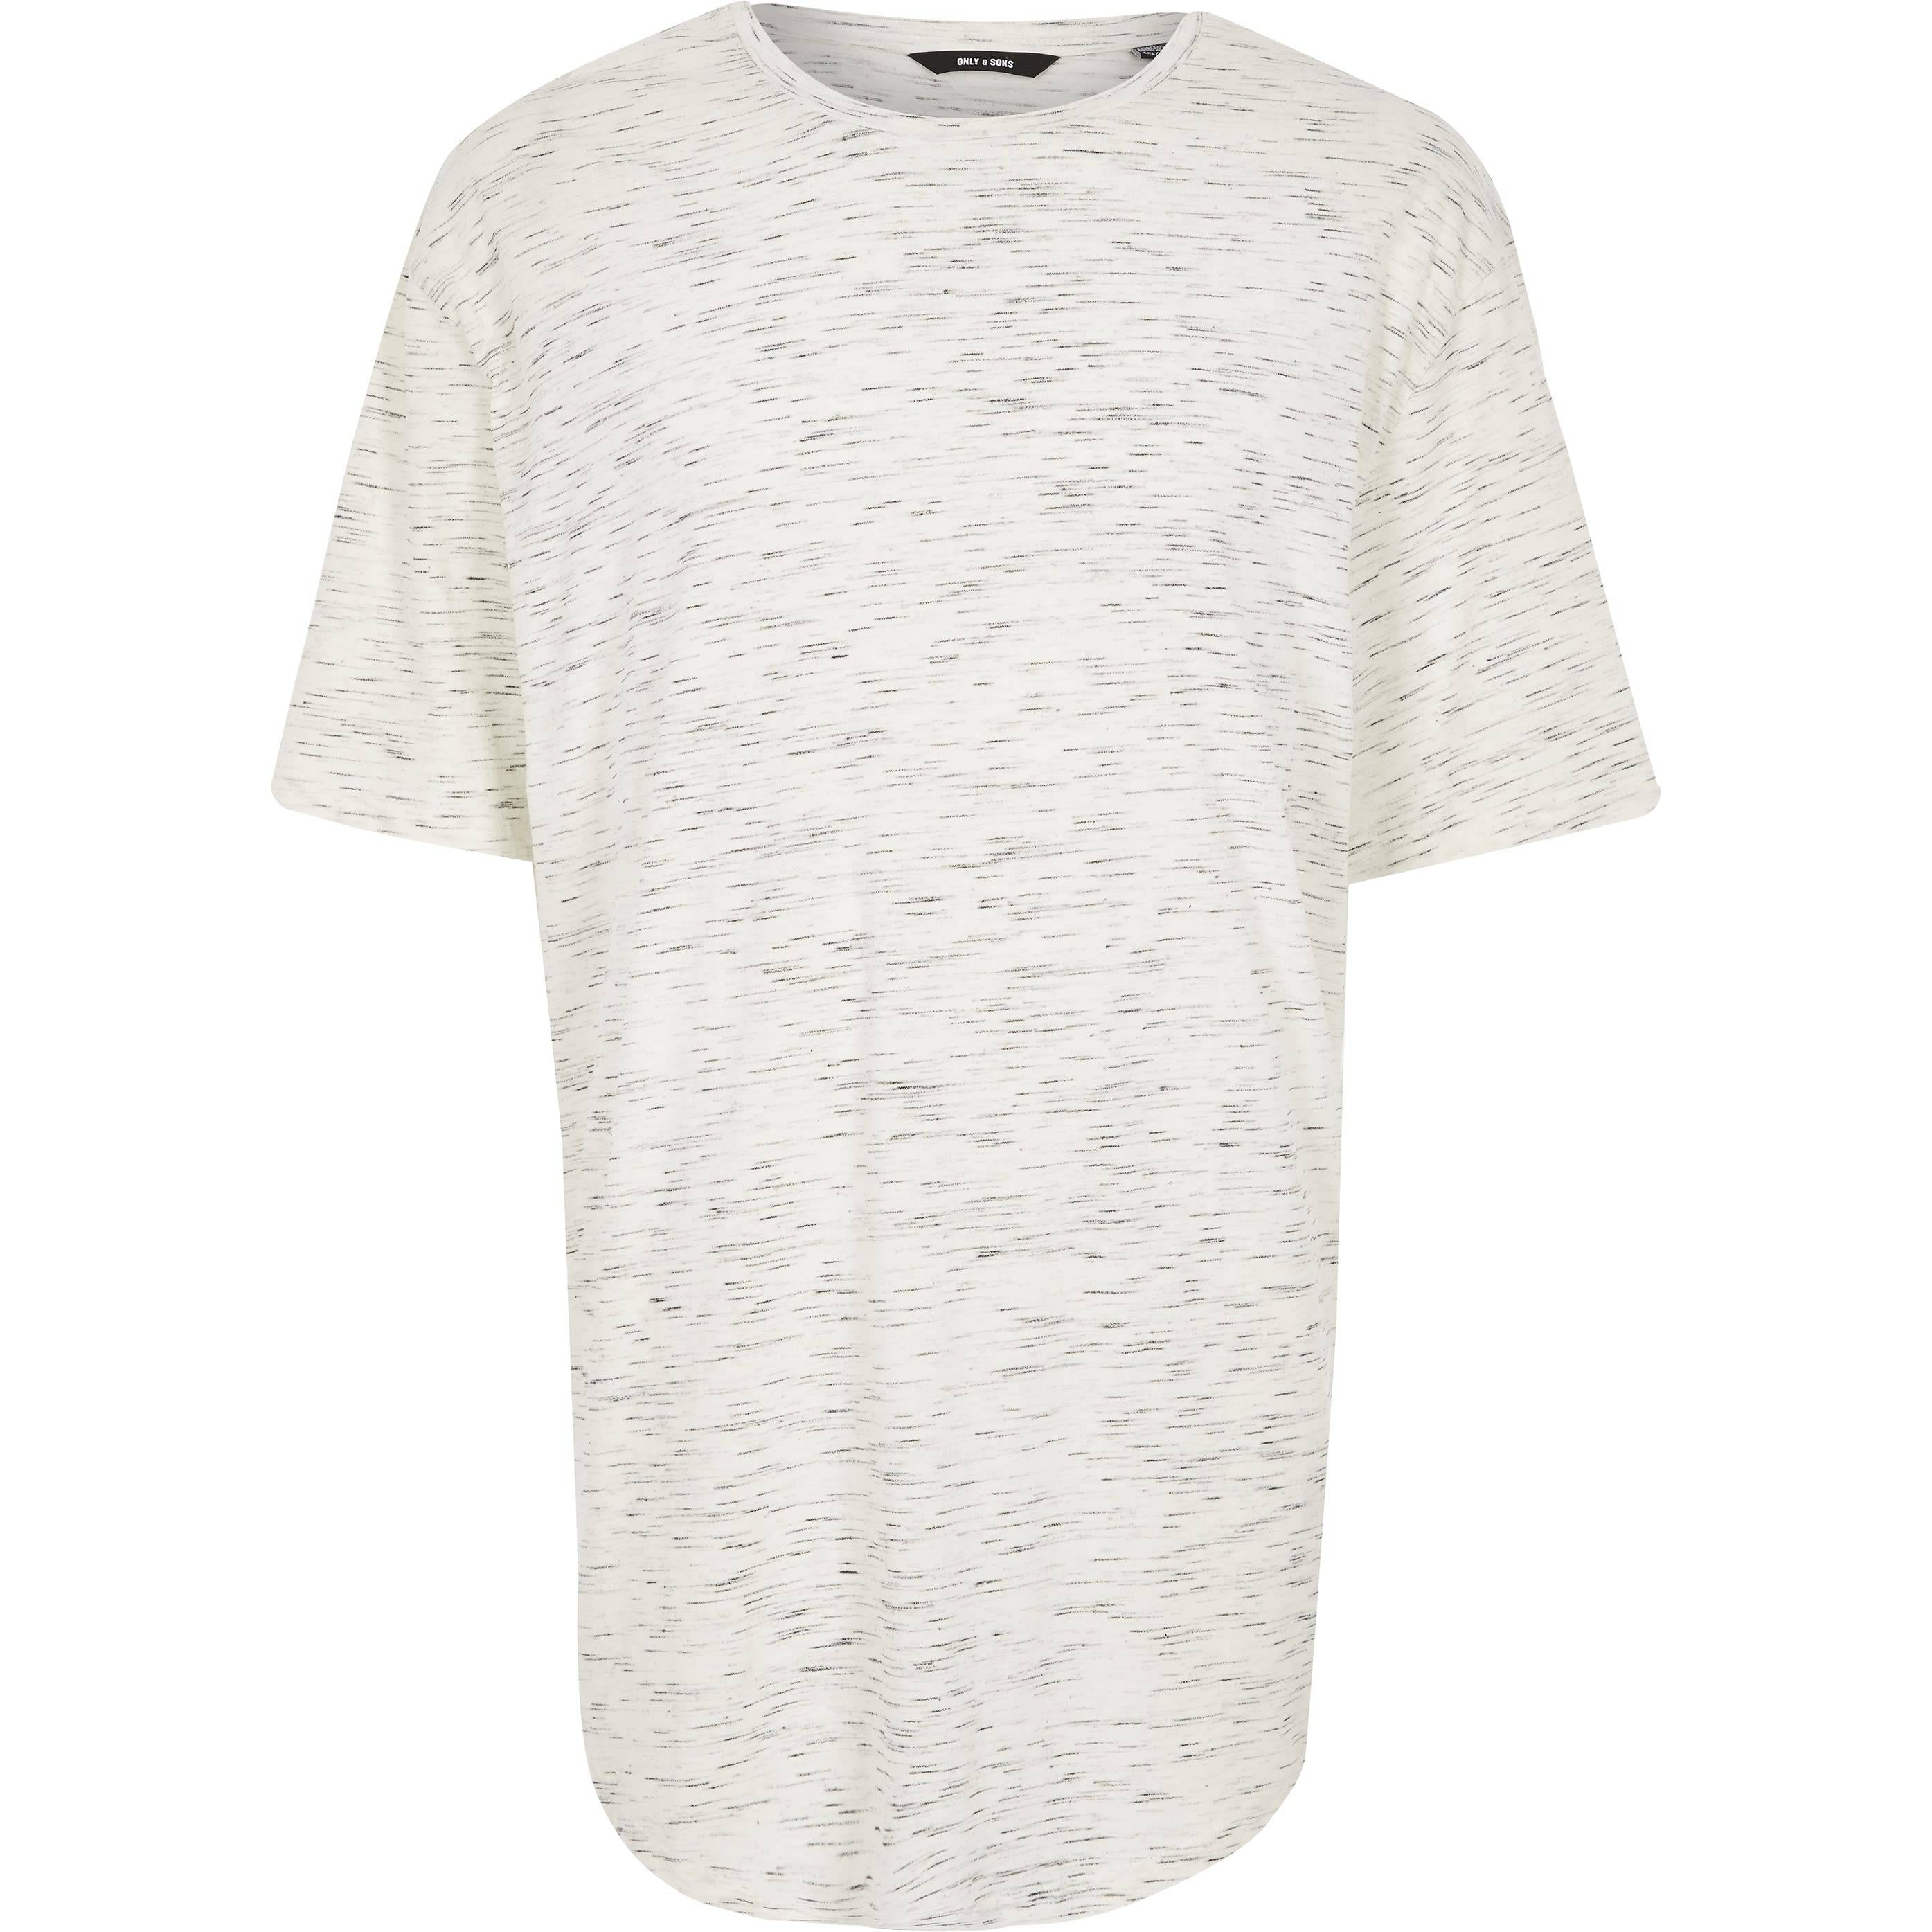 River Island Mens Only & Sons Big and Tall White print T-shirt (XXXXL)